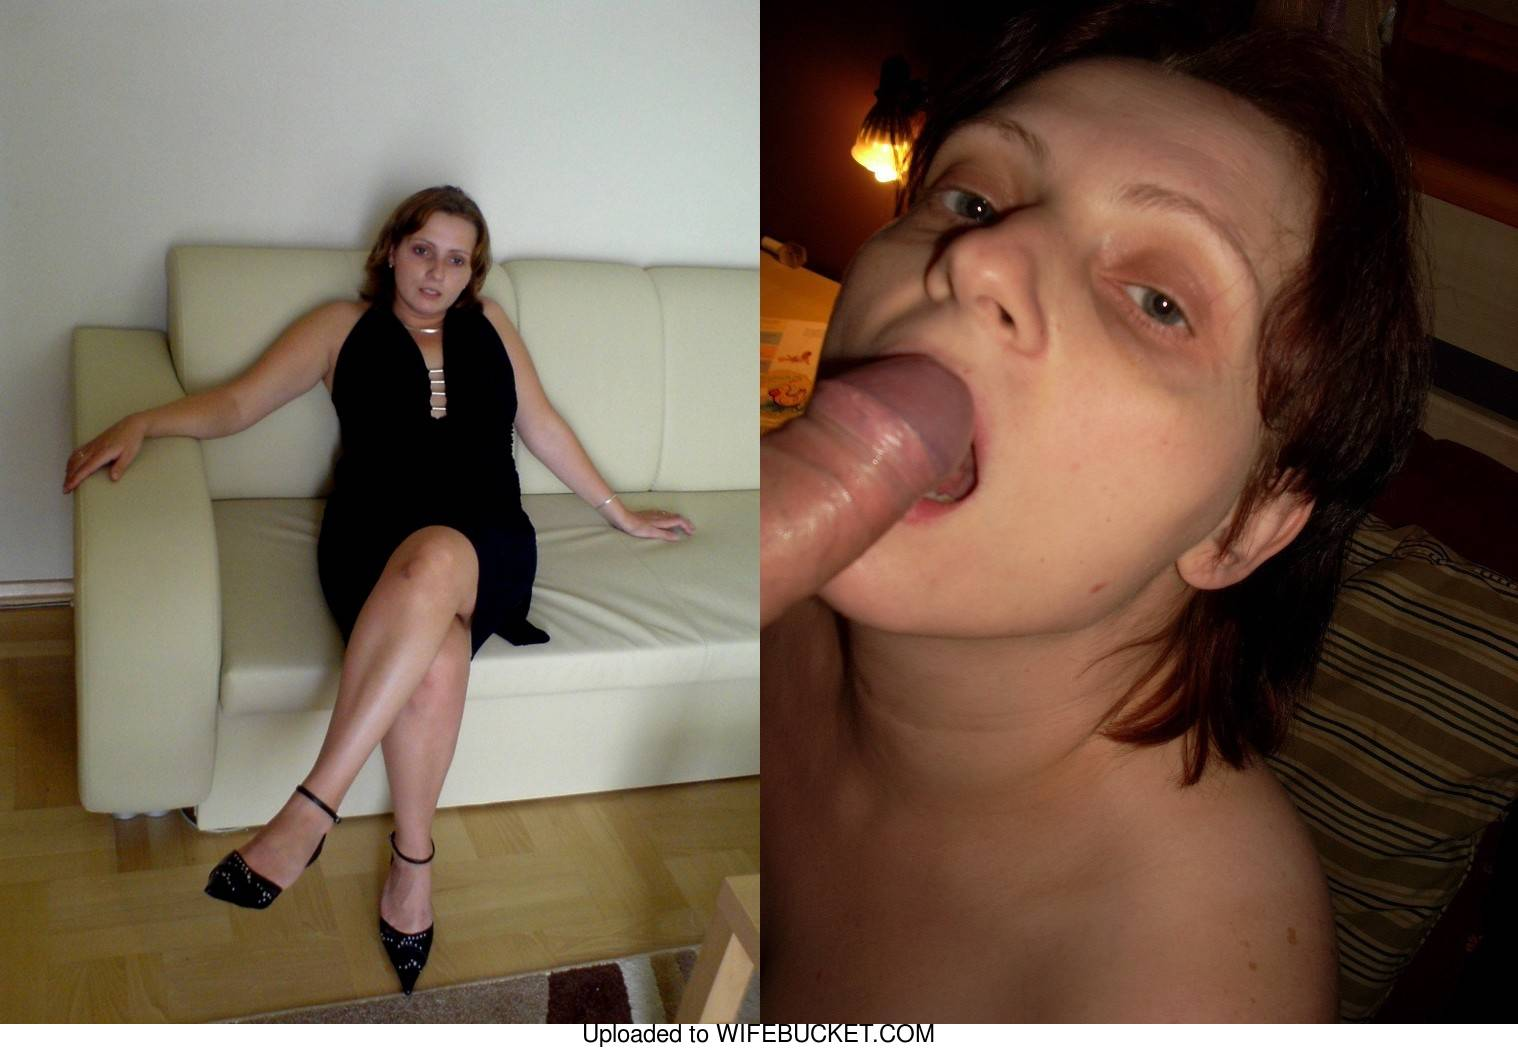 amateur milf in before-after blowjob photos